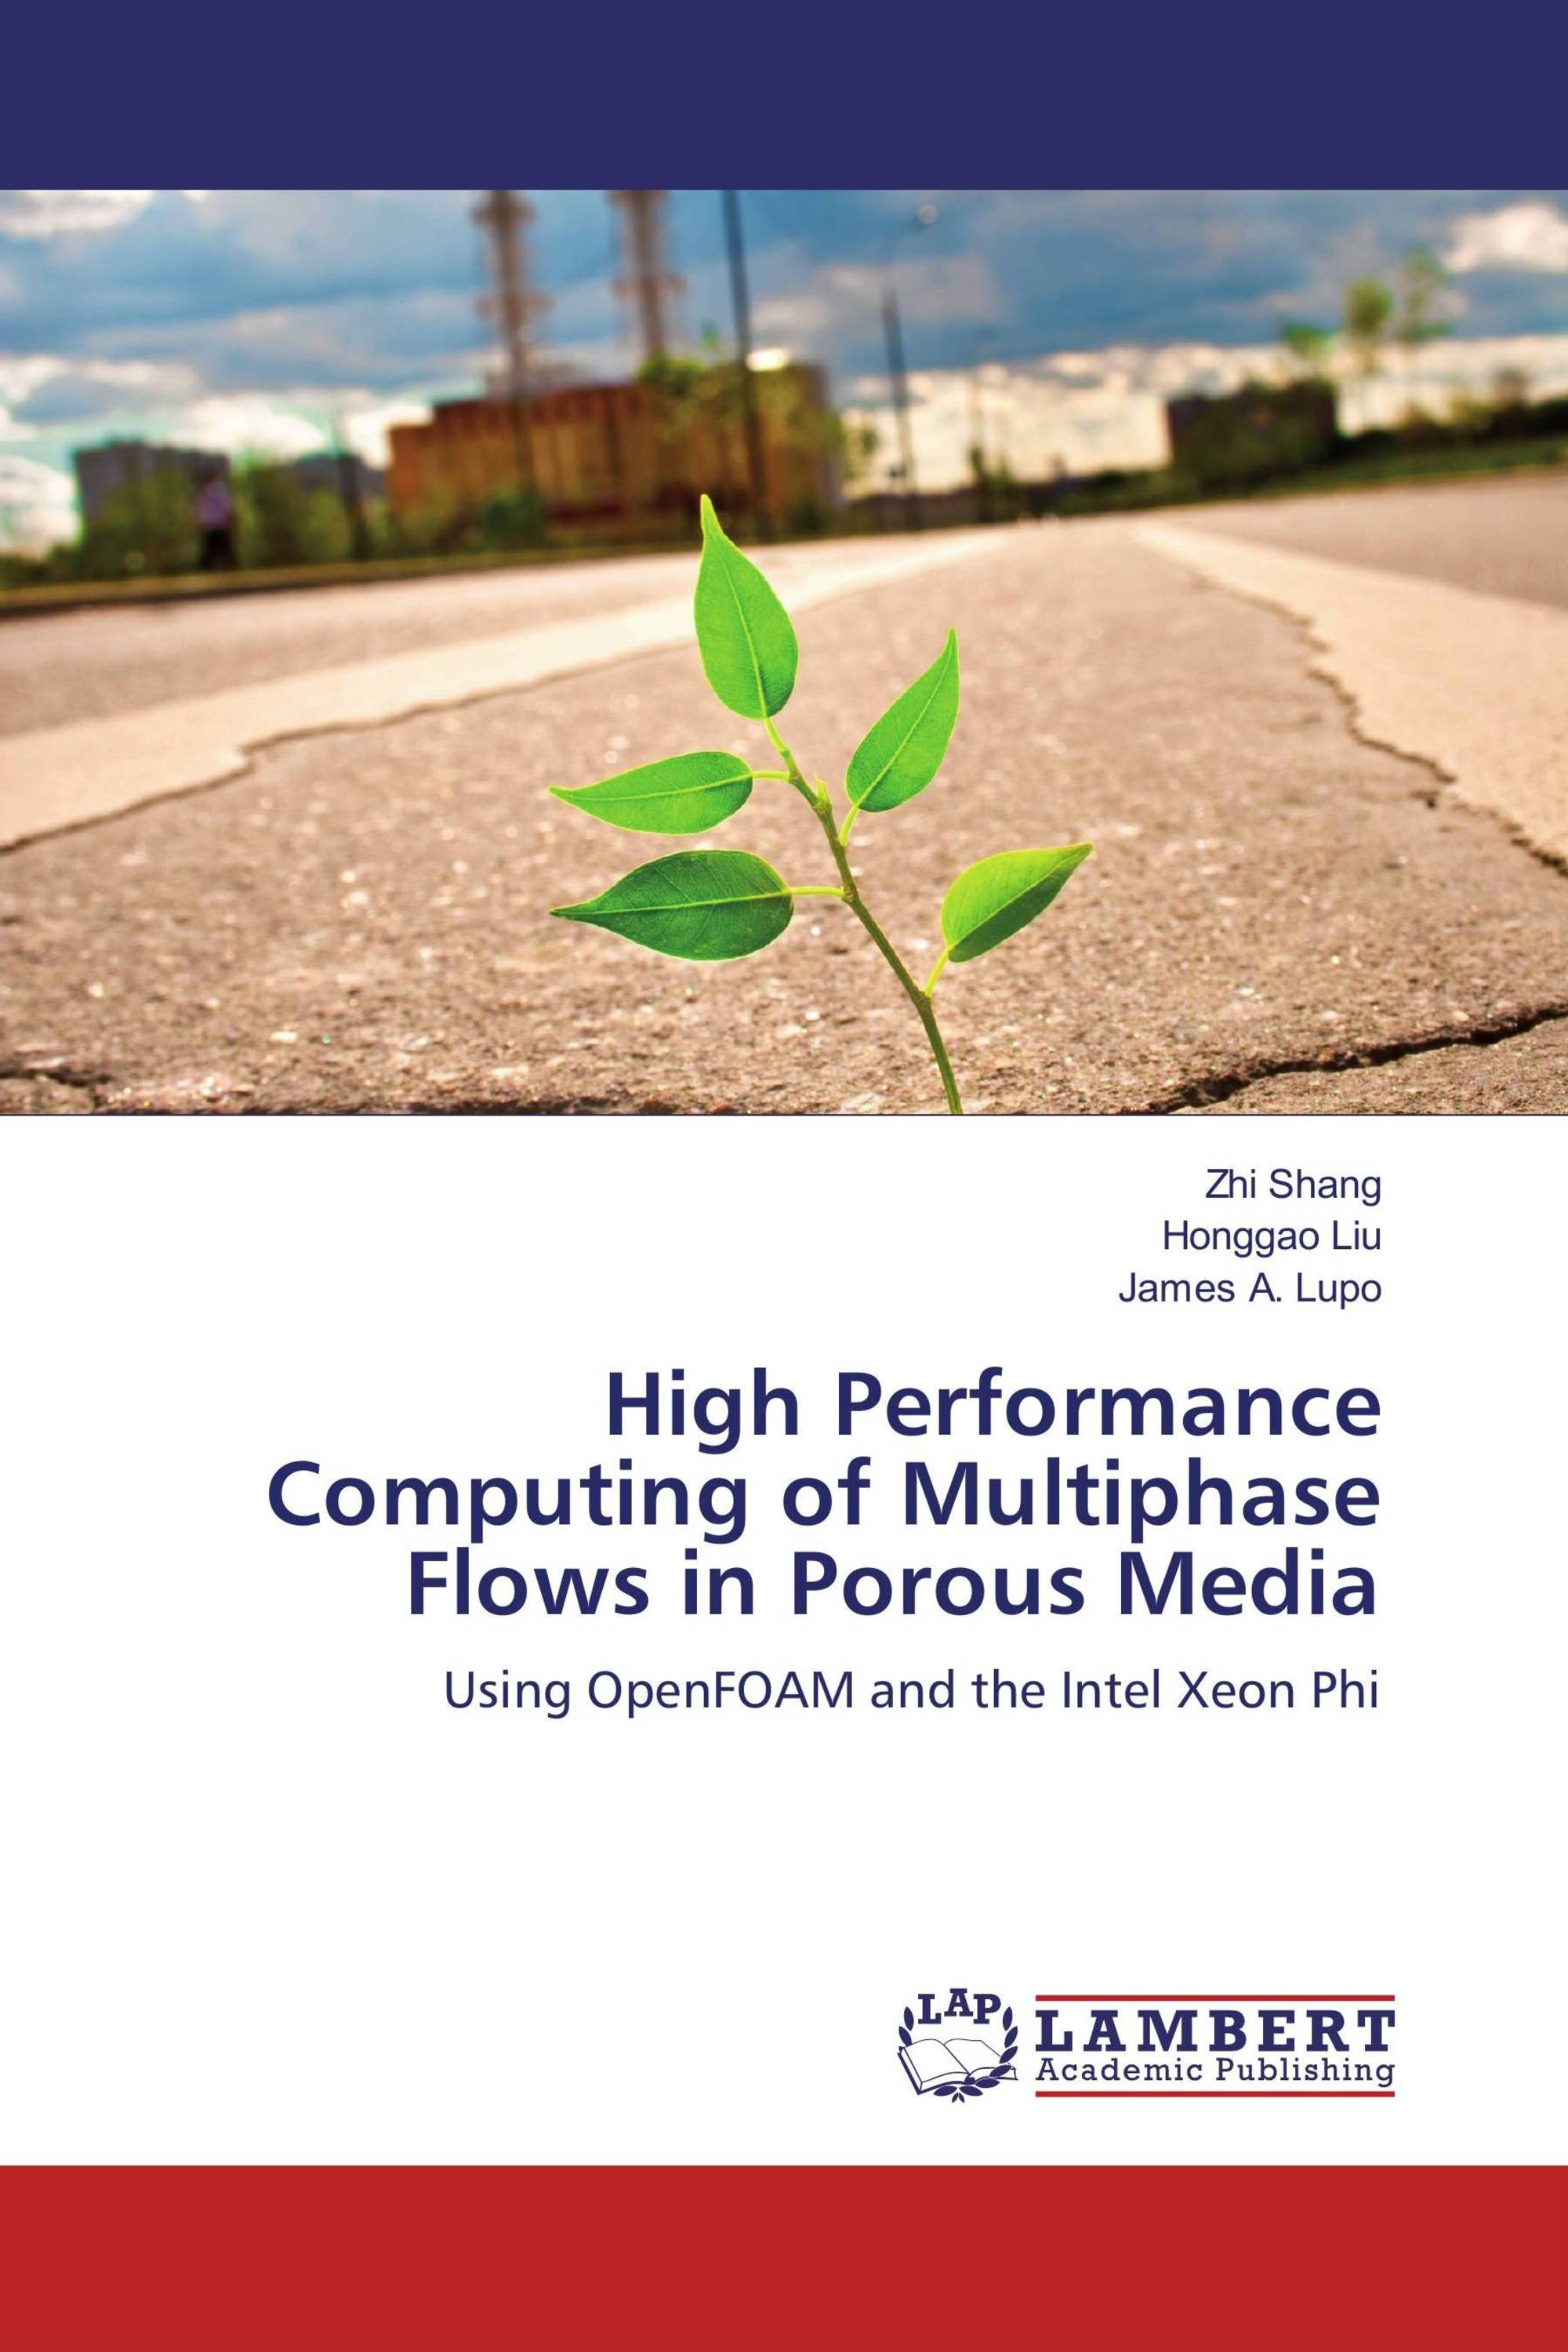 High Performance Computing of Multiphase Flows in Porous Media